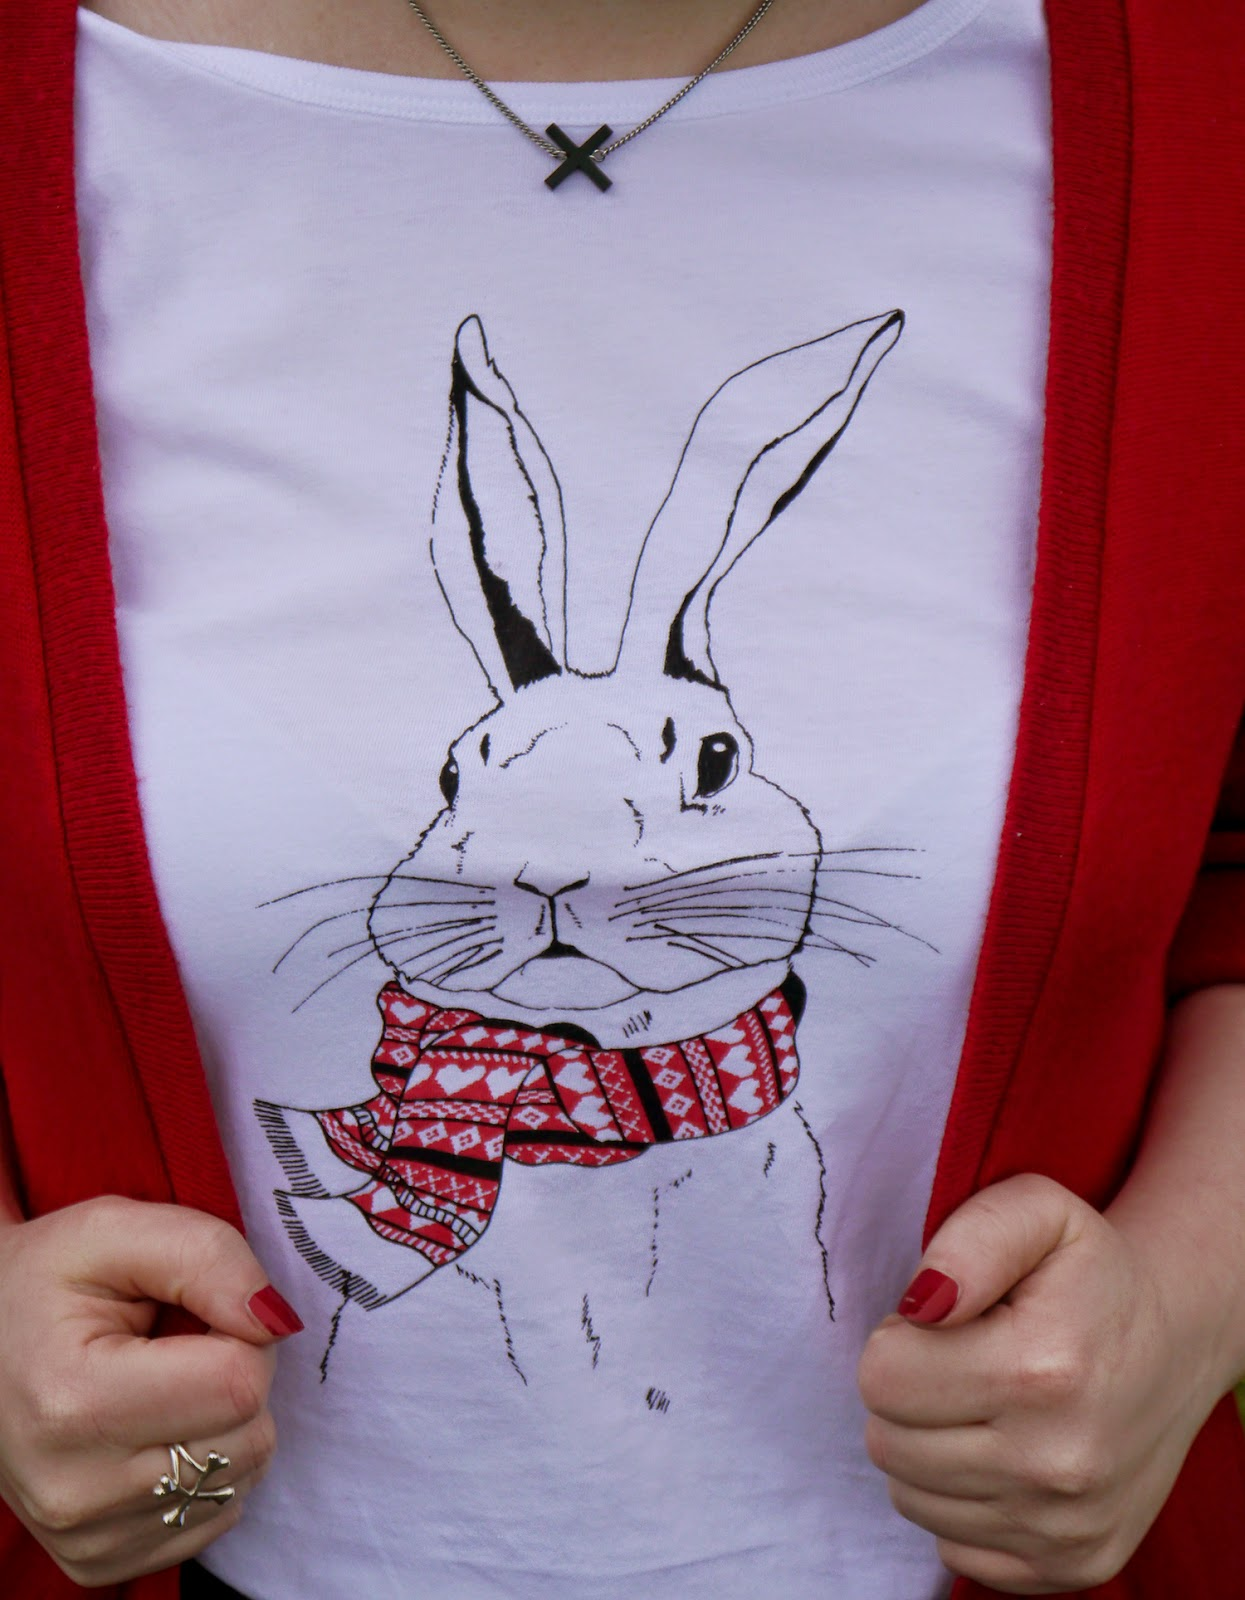 Brat and Suzie tshirt, Brat & Suzie, rabbit tshirt, winter style, Scottish Blogger, Styled by, British design, London brand, Tatty Devine, rabbit in a scarf, red scarf